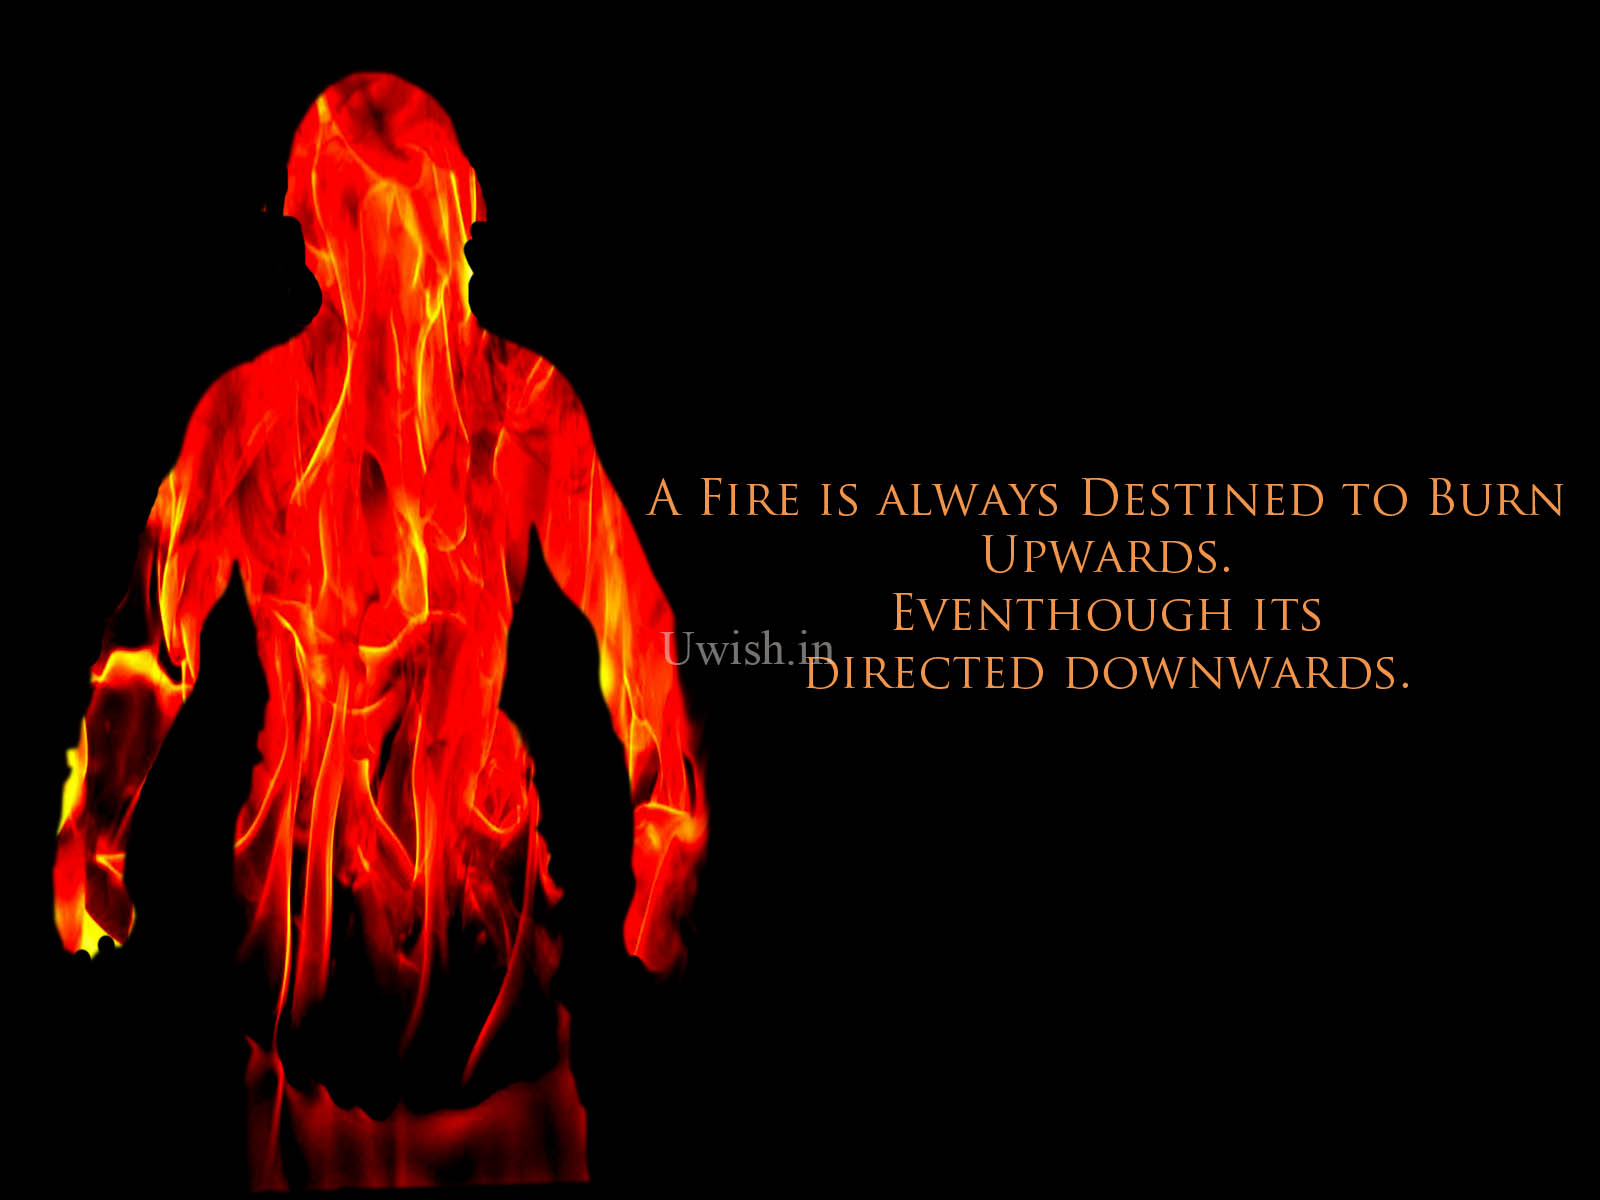 A Fire is always destined to burn upwards. Eventhough its, directed downwards. Fire man with inspiring quote